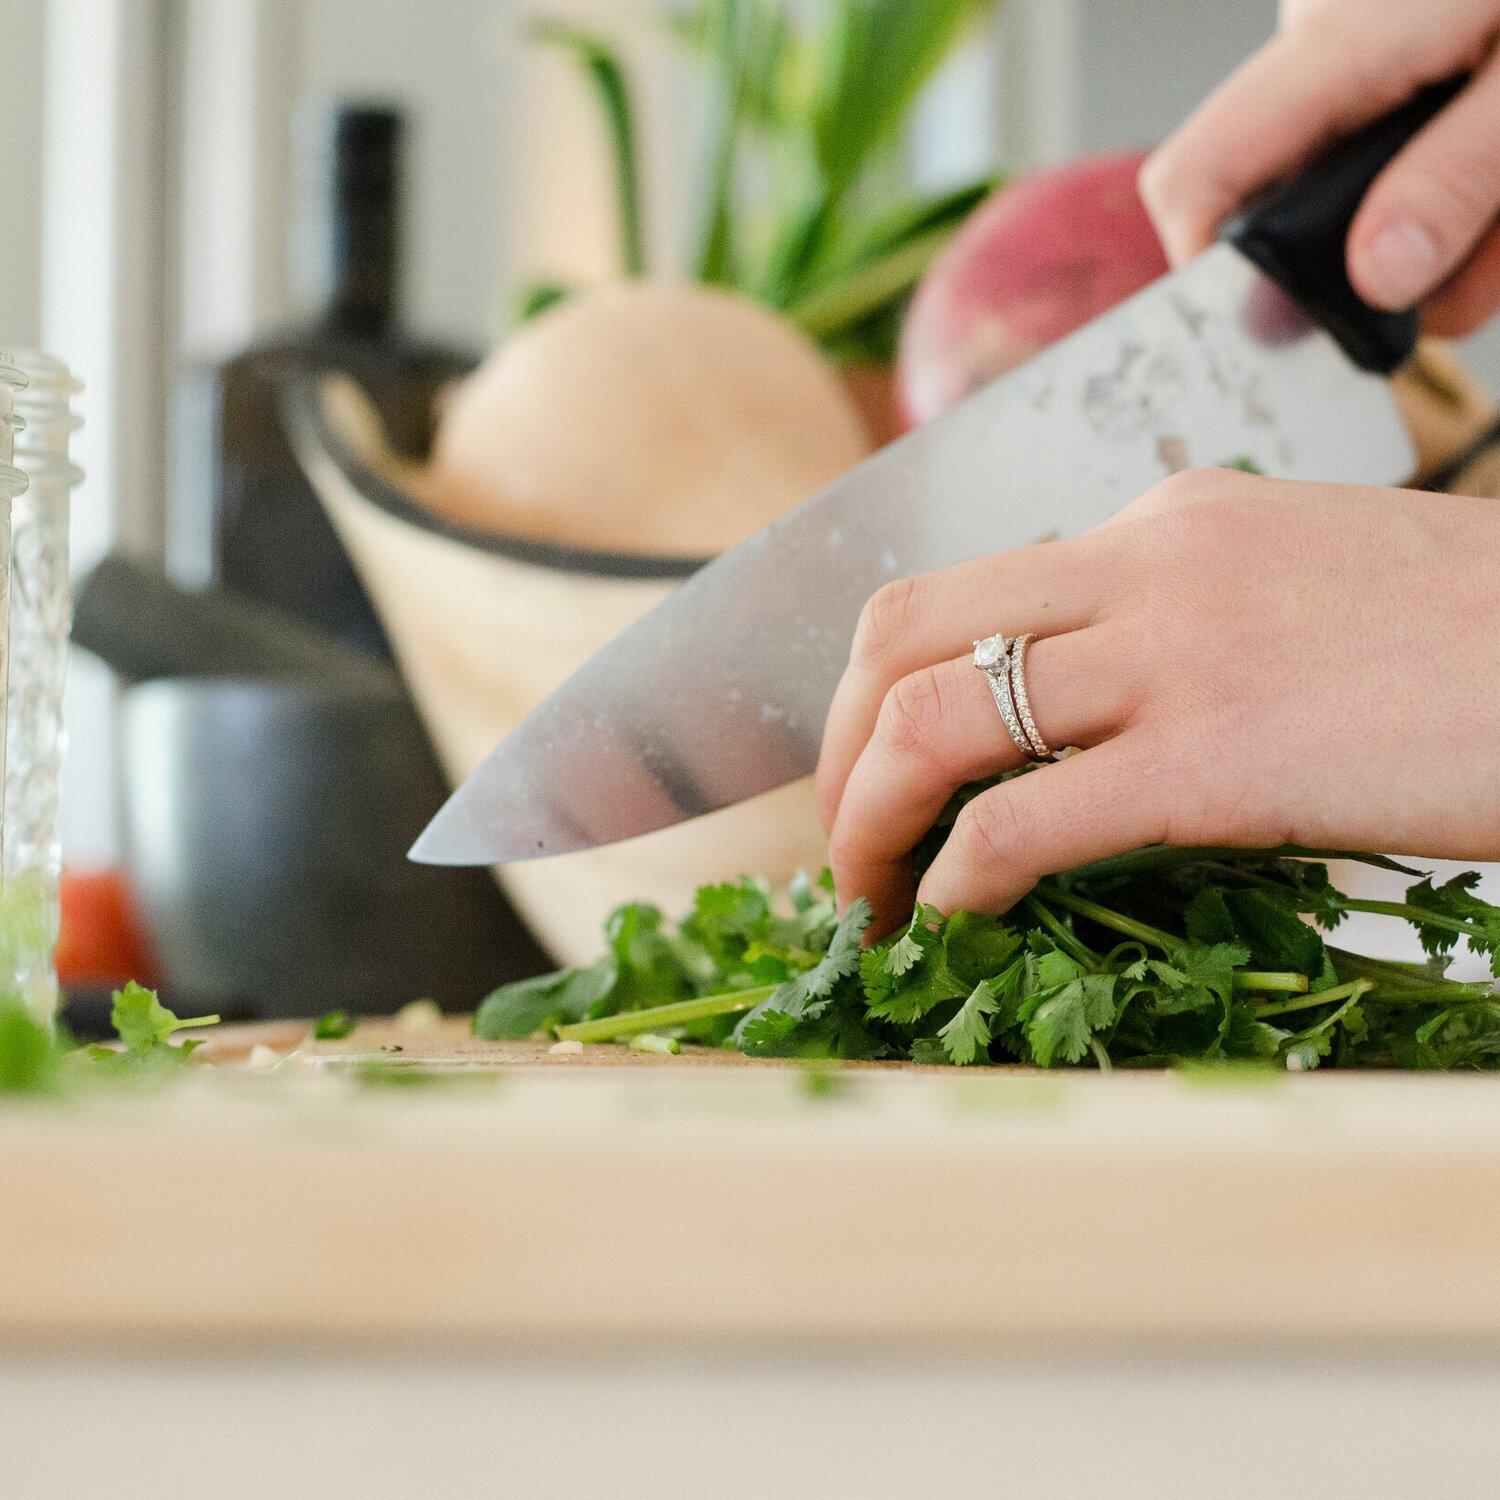 WANT TO SIMPLIFY COOKING? - Get 3 Meals Free On Your First Blue Apron Order